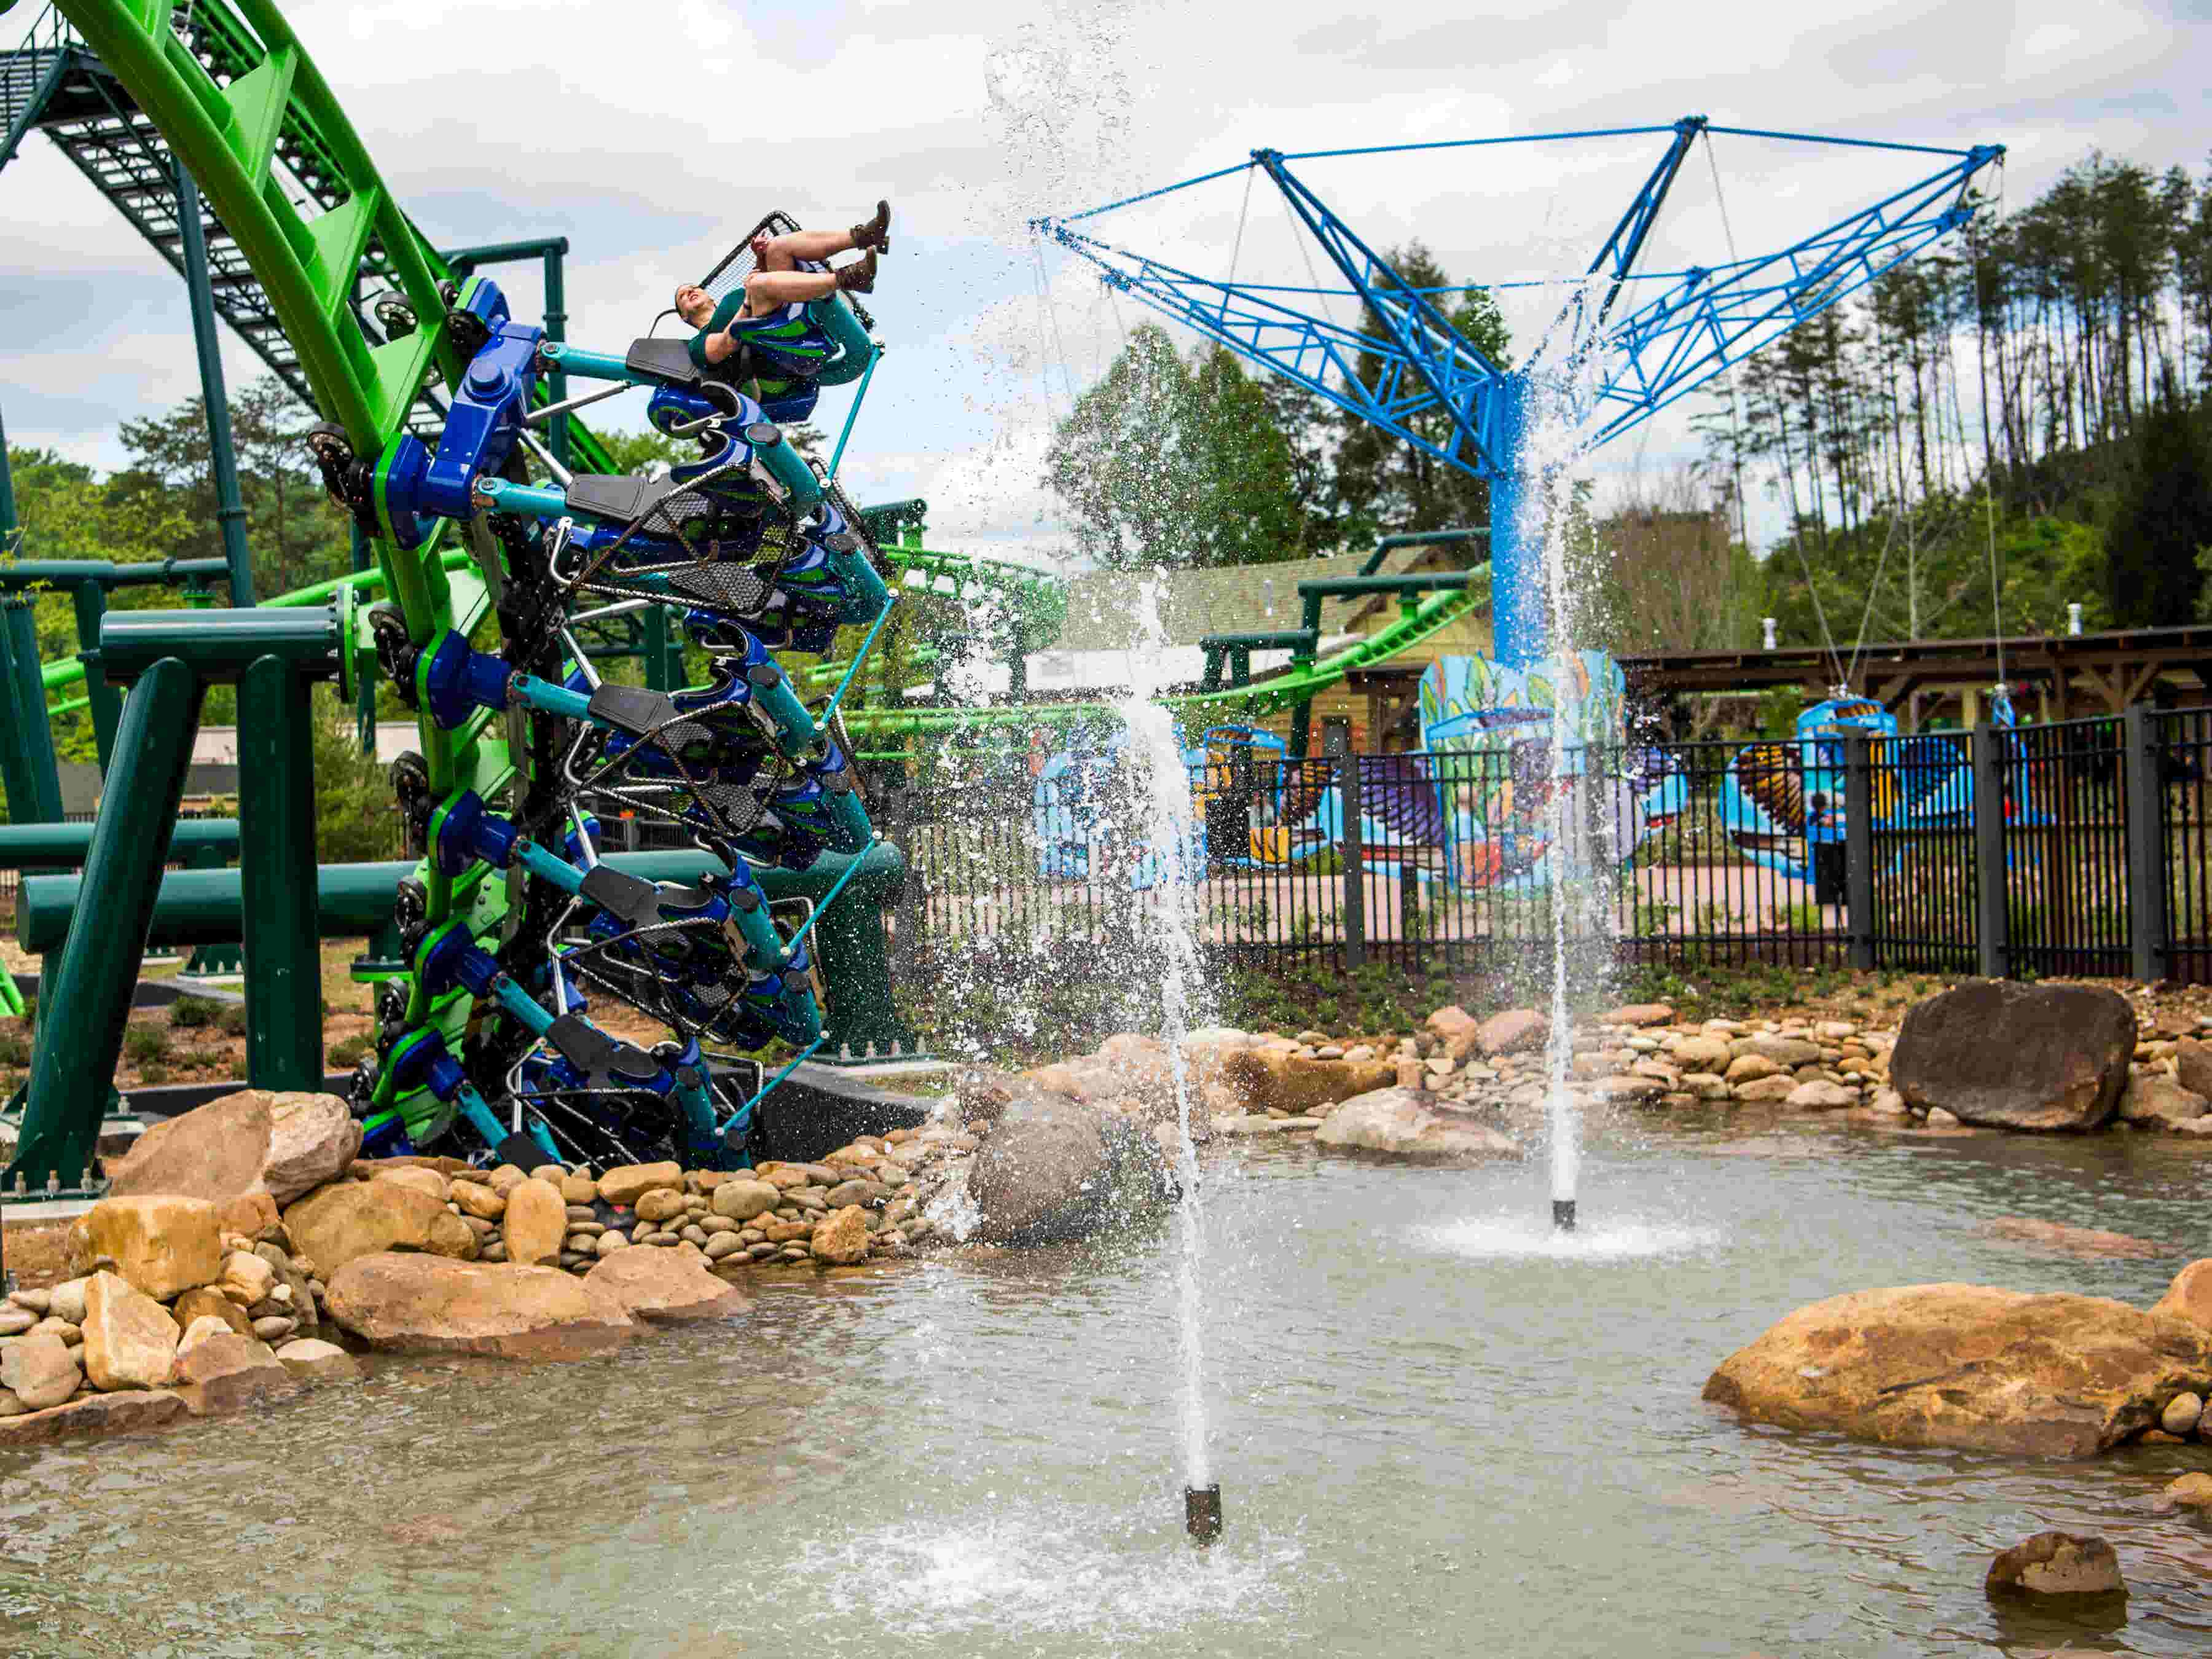 Take A Look Inside Dollywood S New Wildwood Grove Expansion